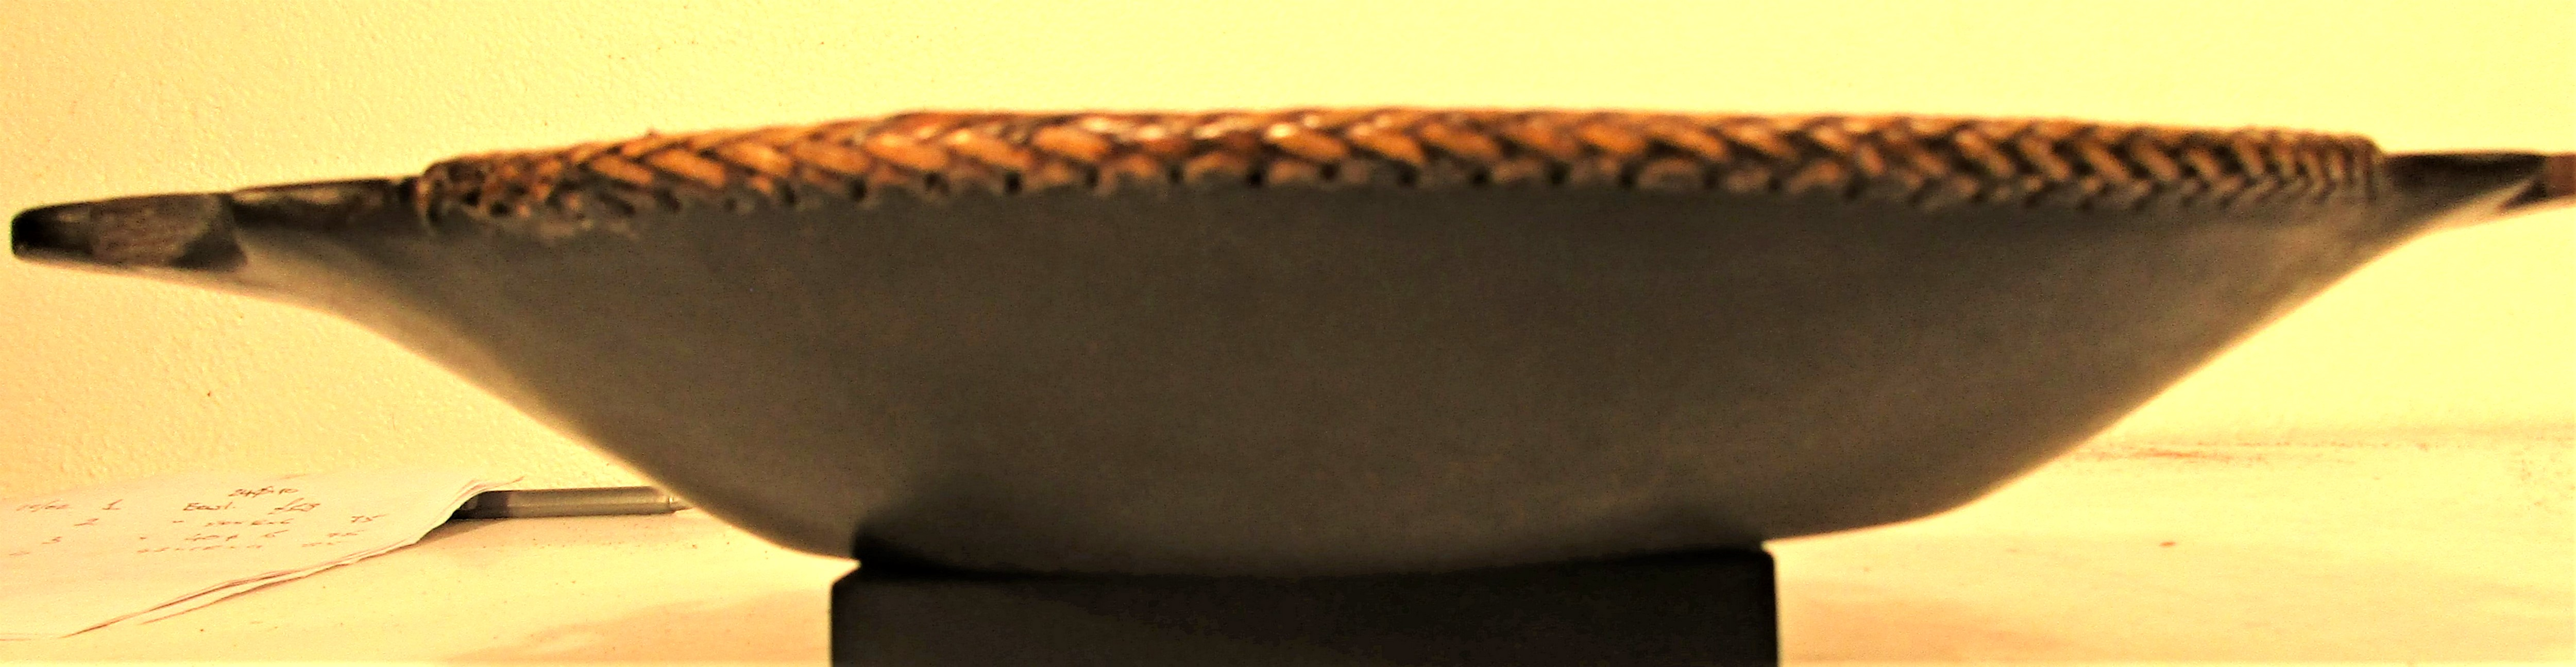 Hardwood bowl from Sarawak, Borneo. Plaited rattan edges and beautiful carved handles that are - Image 3 of 4